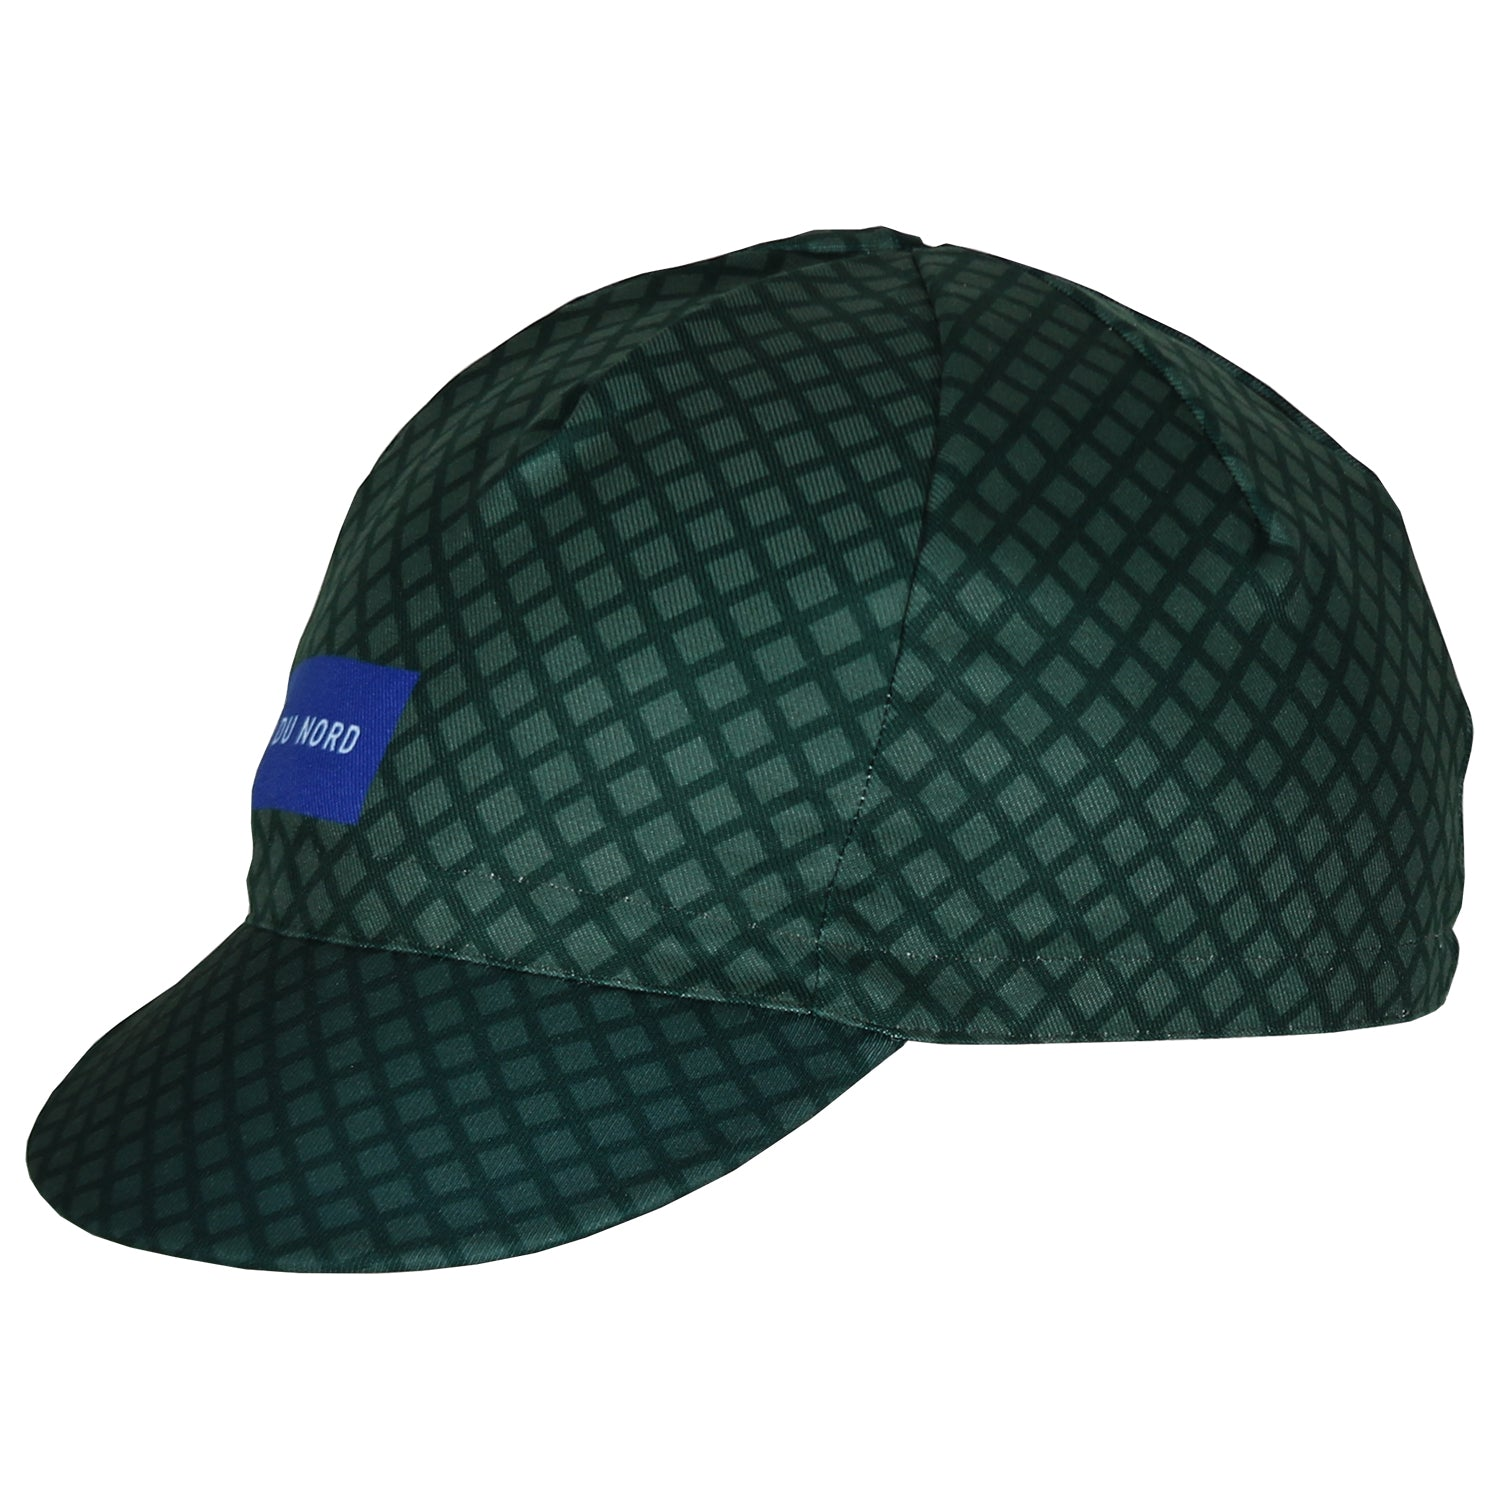 Paris-Roubaix Monument Cycling Cap